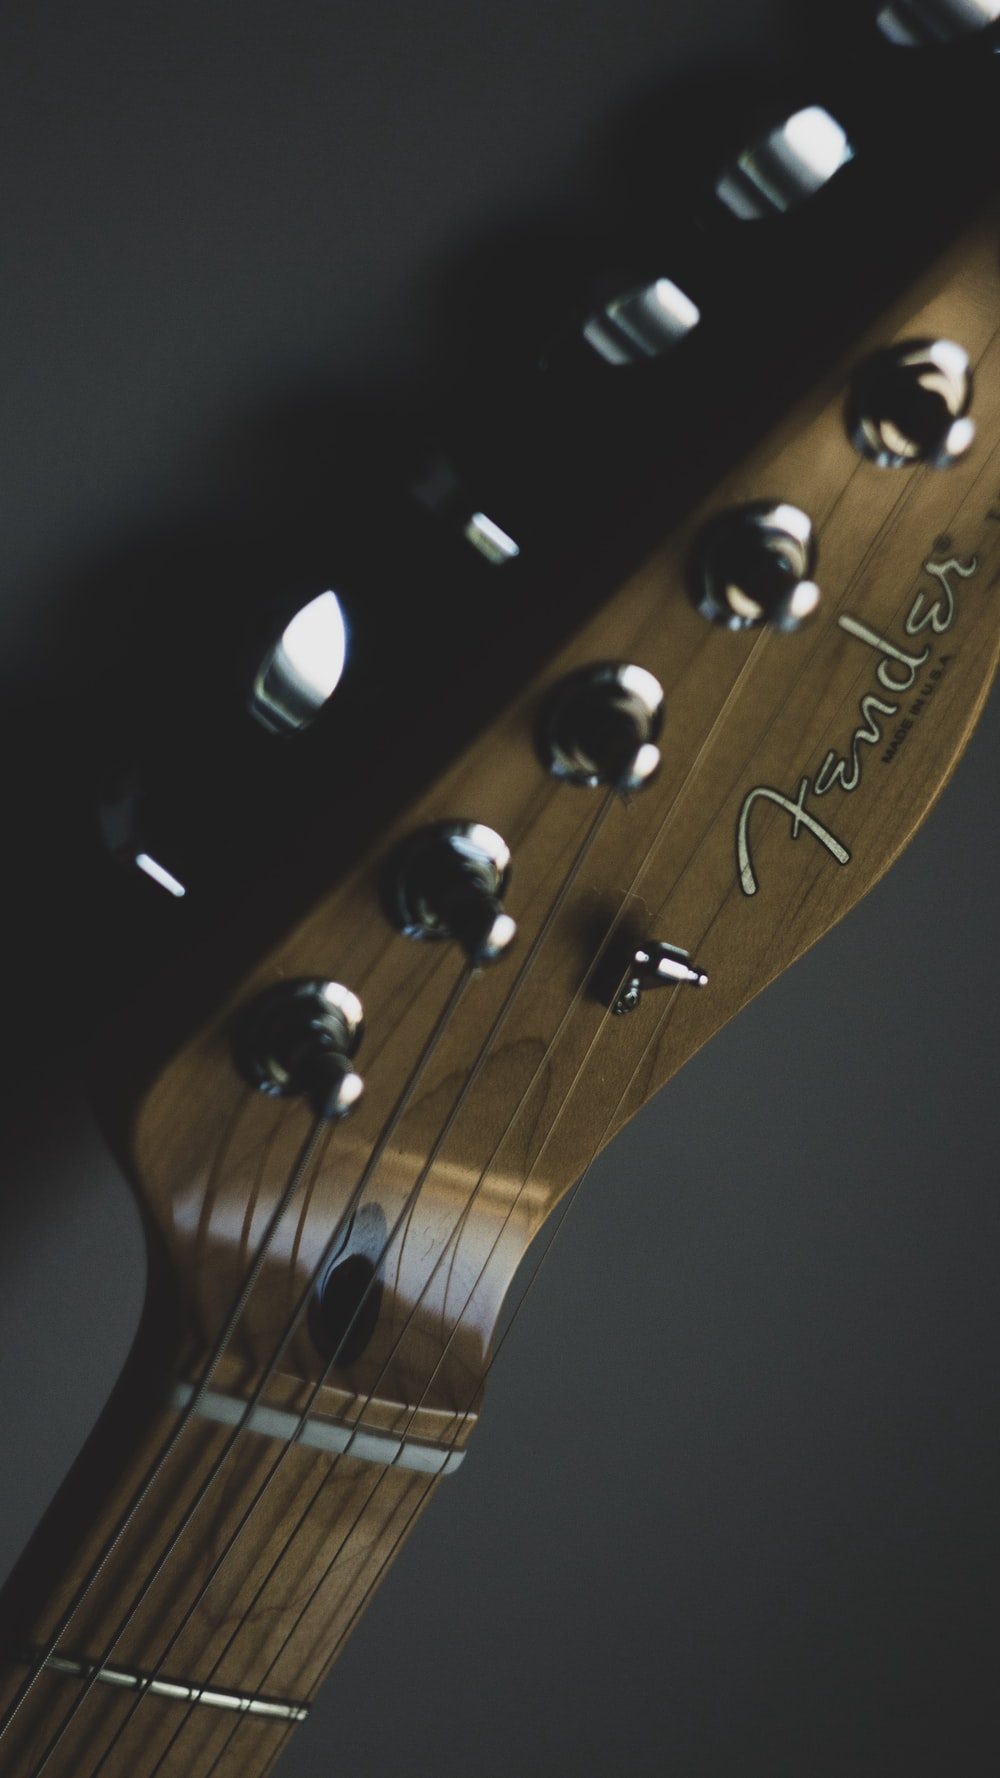 Guitar Wallpaper Pictures Download Free Images On Unsplash